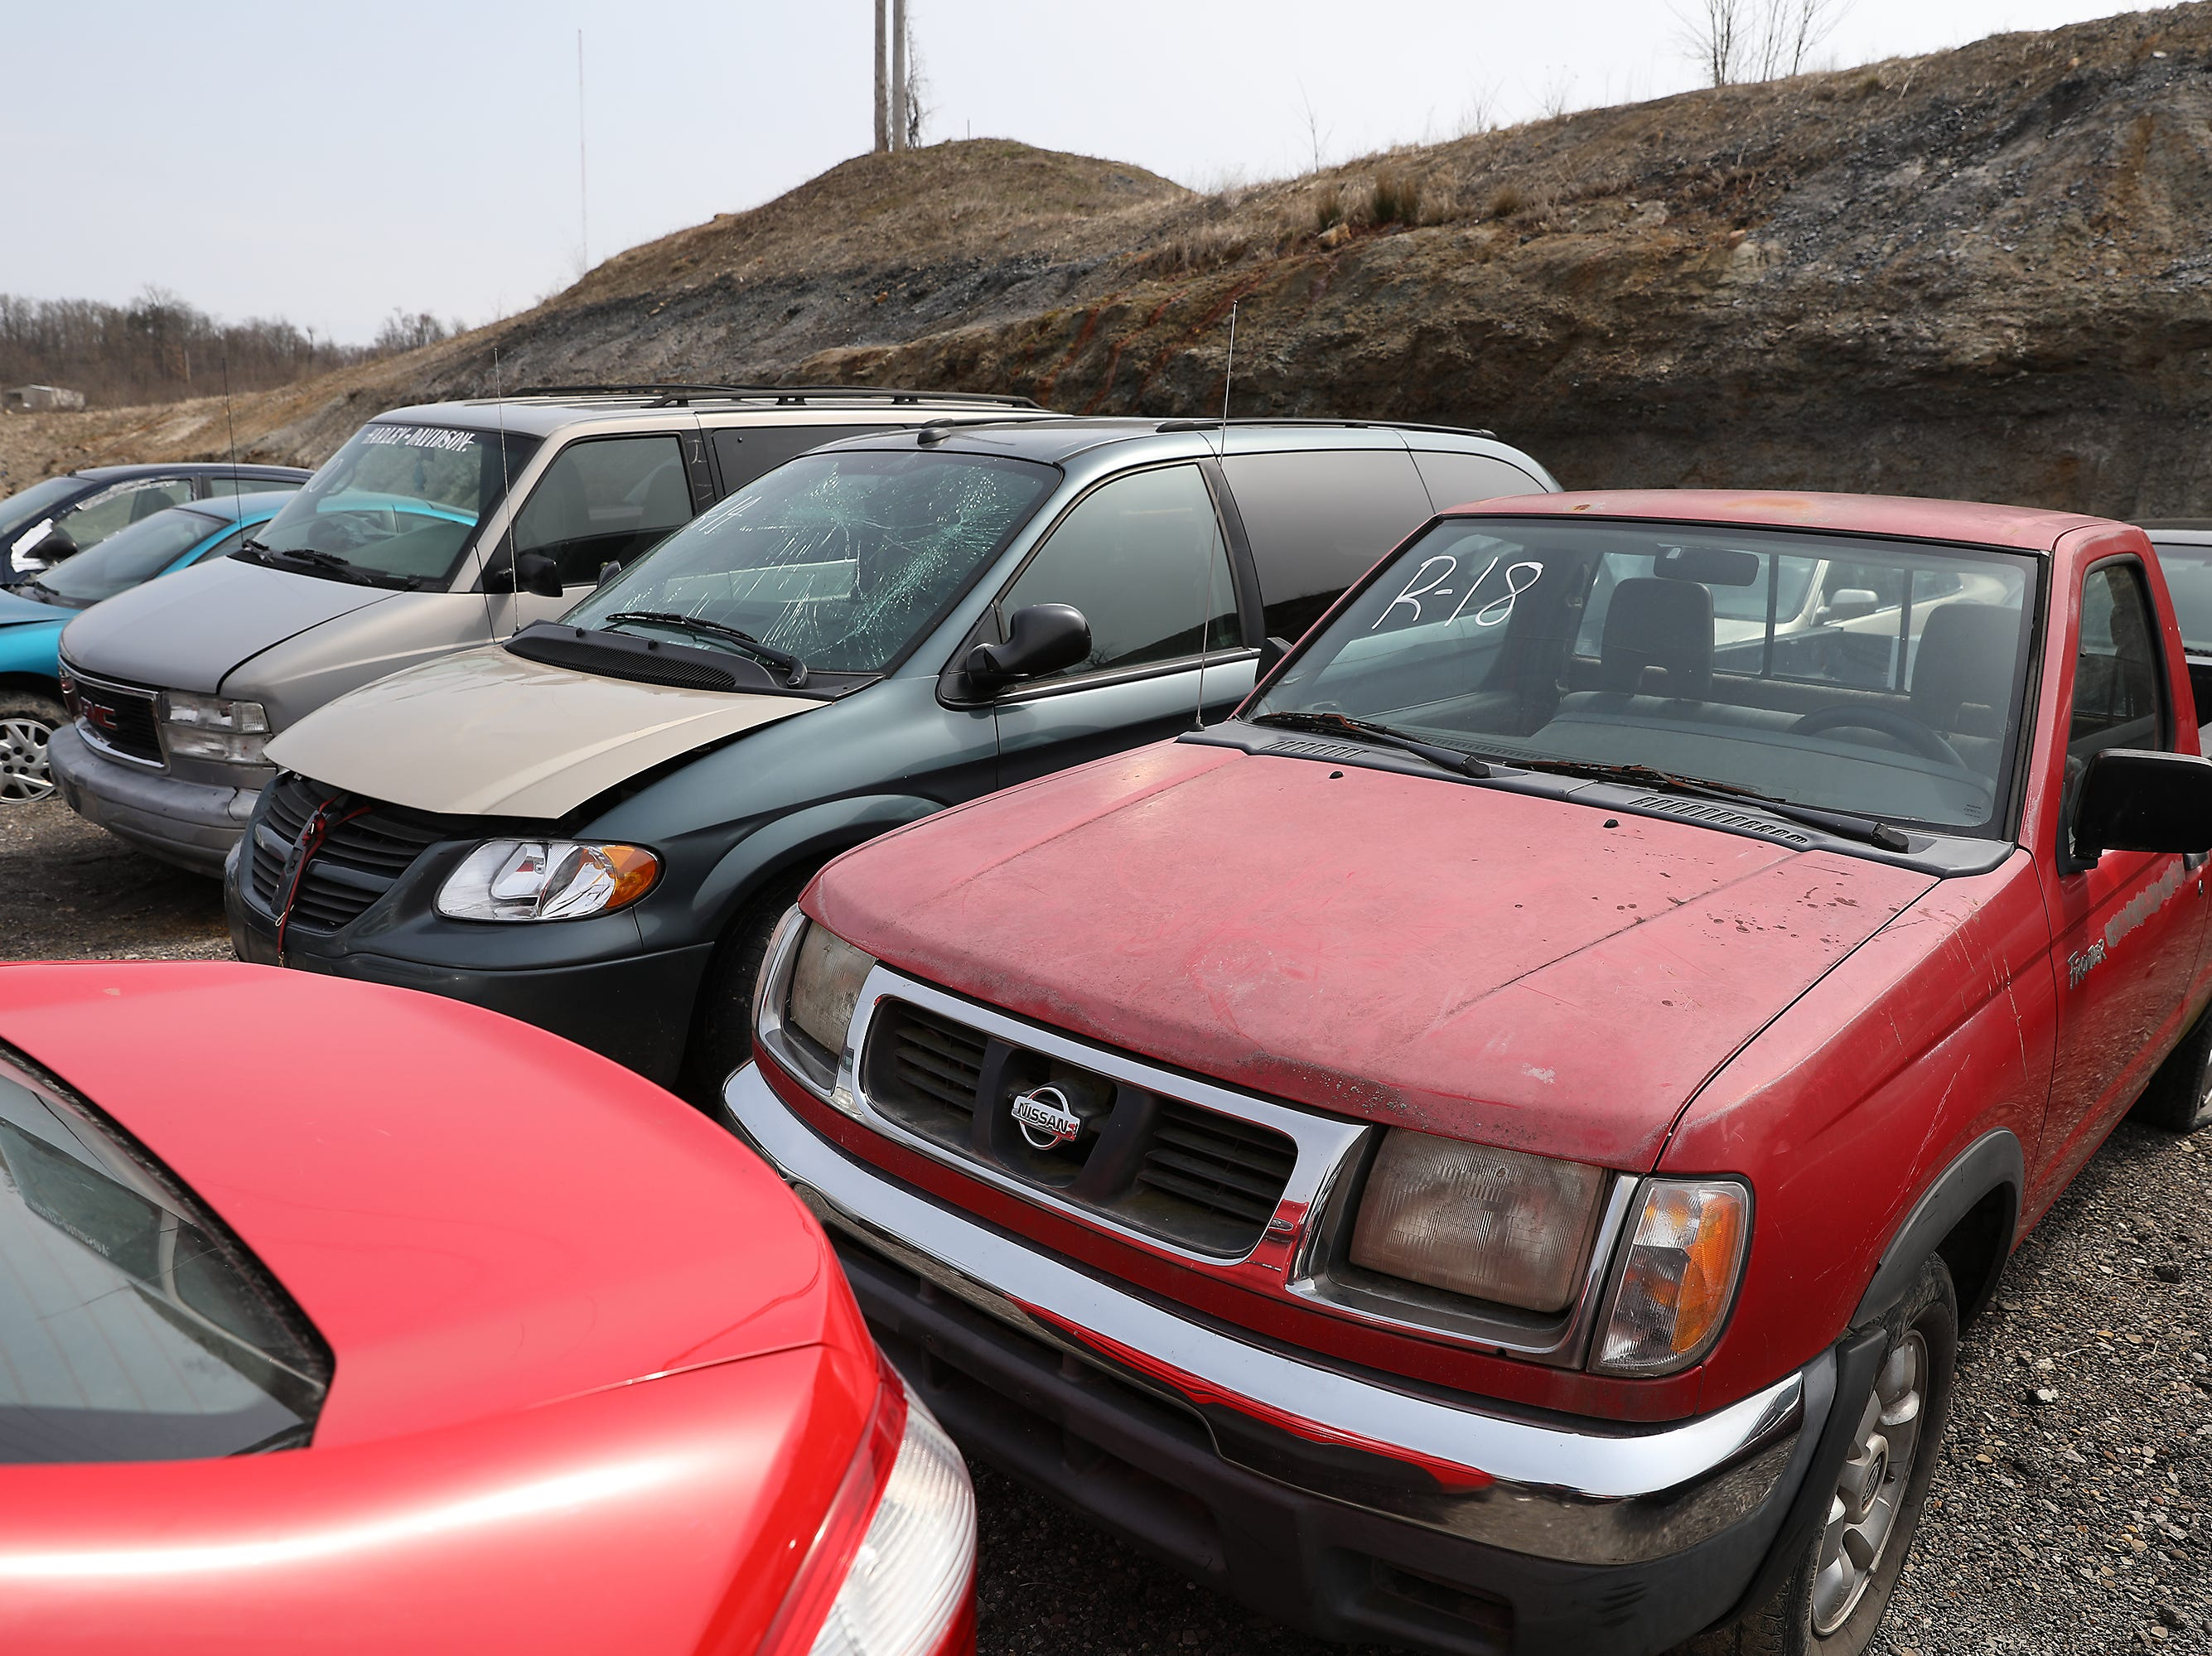 The Muskingum County Sheriff's Office is holding an auto auction on Saturday, April 6, starting at 10 a.m. The auction will be held at the office's evidence building at 1470 Adamsville Road in Zanesville. A variety of vehicles in a variety of conditions are up for auction.